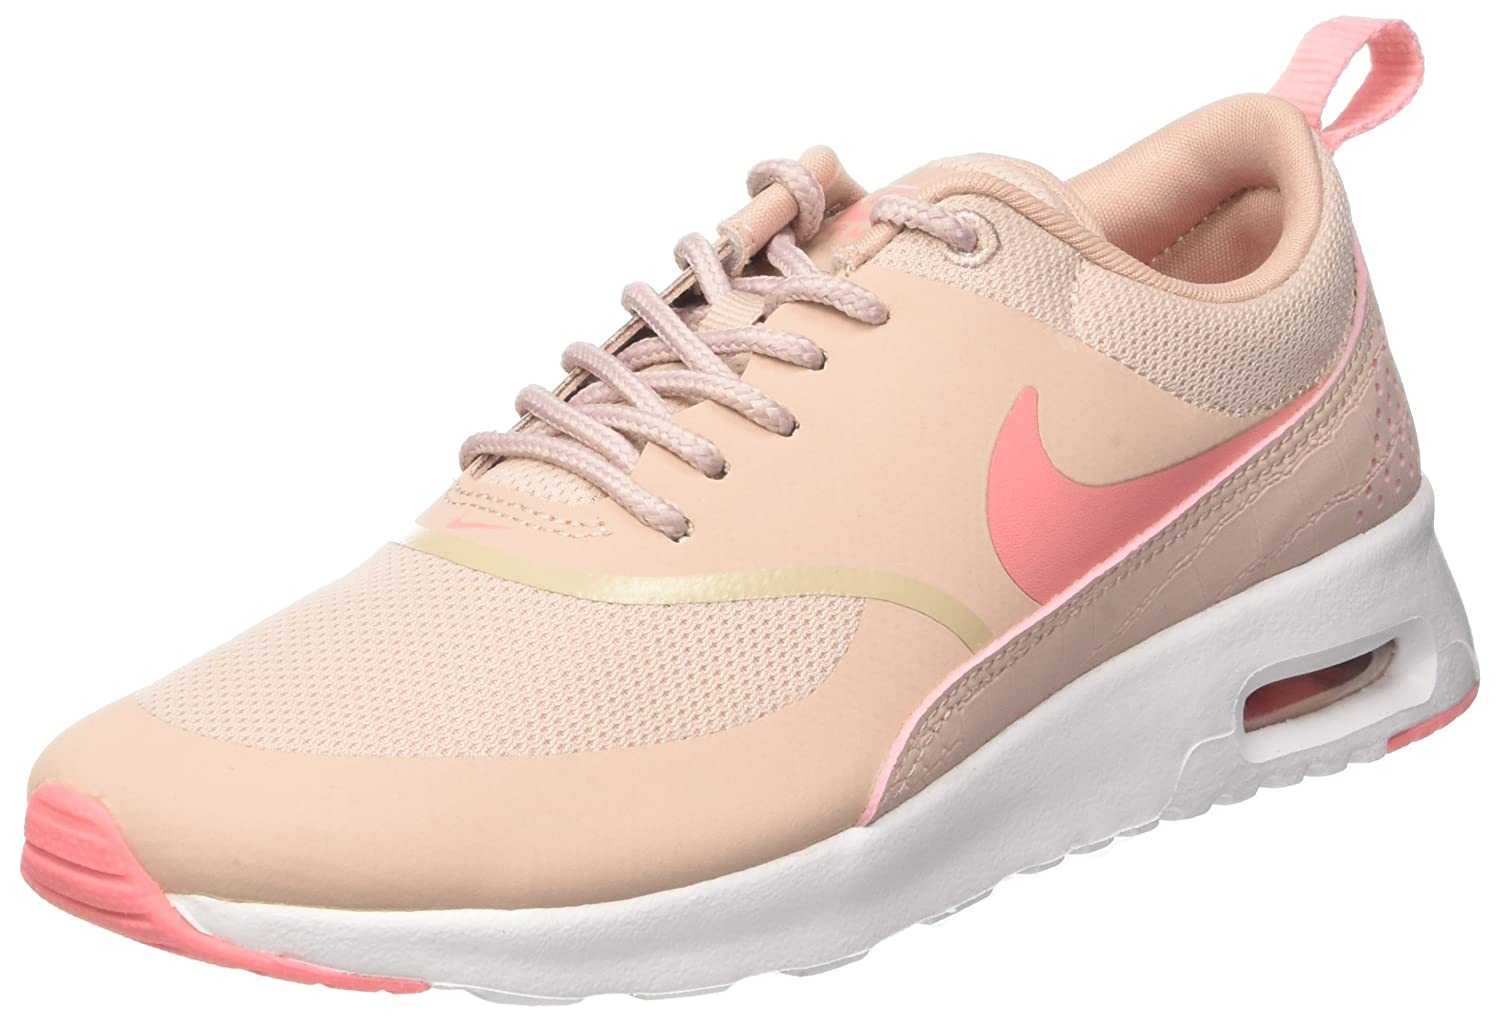 Pink (Pink Oxford   Bright Melon   White) Nike Women's Air Max Thea Low-Top Sneakers, Black